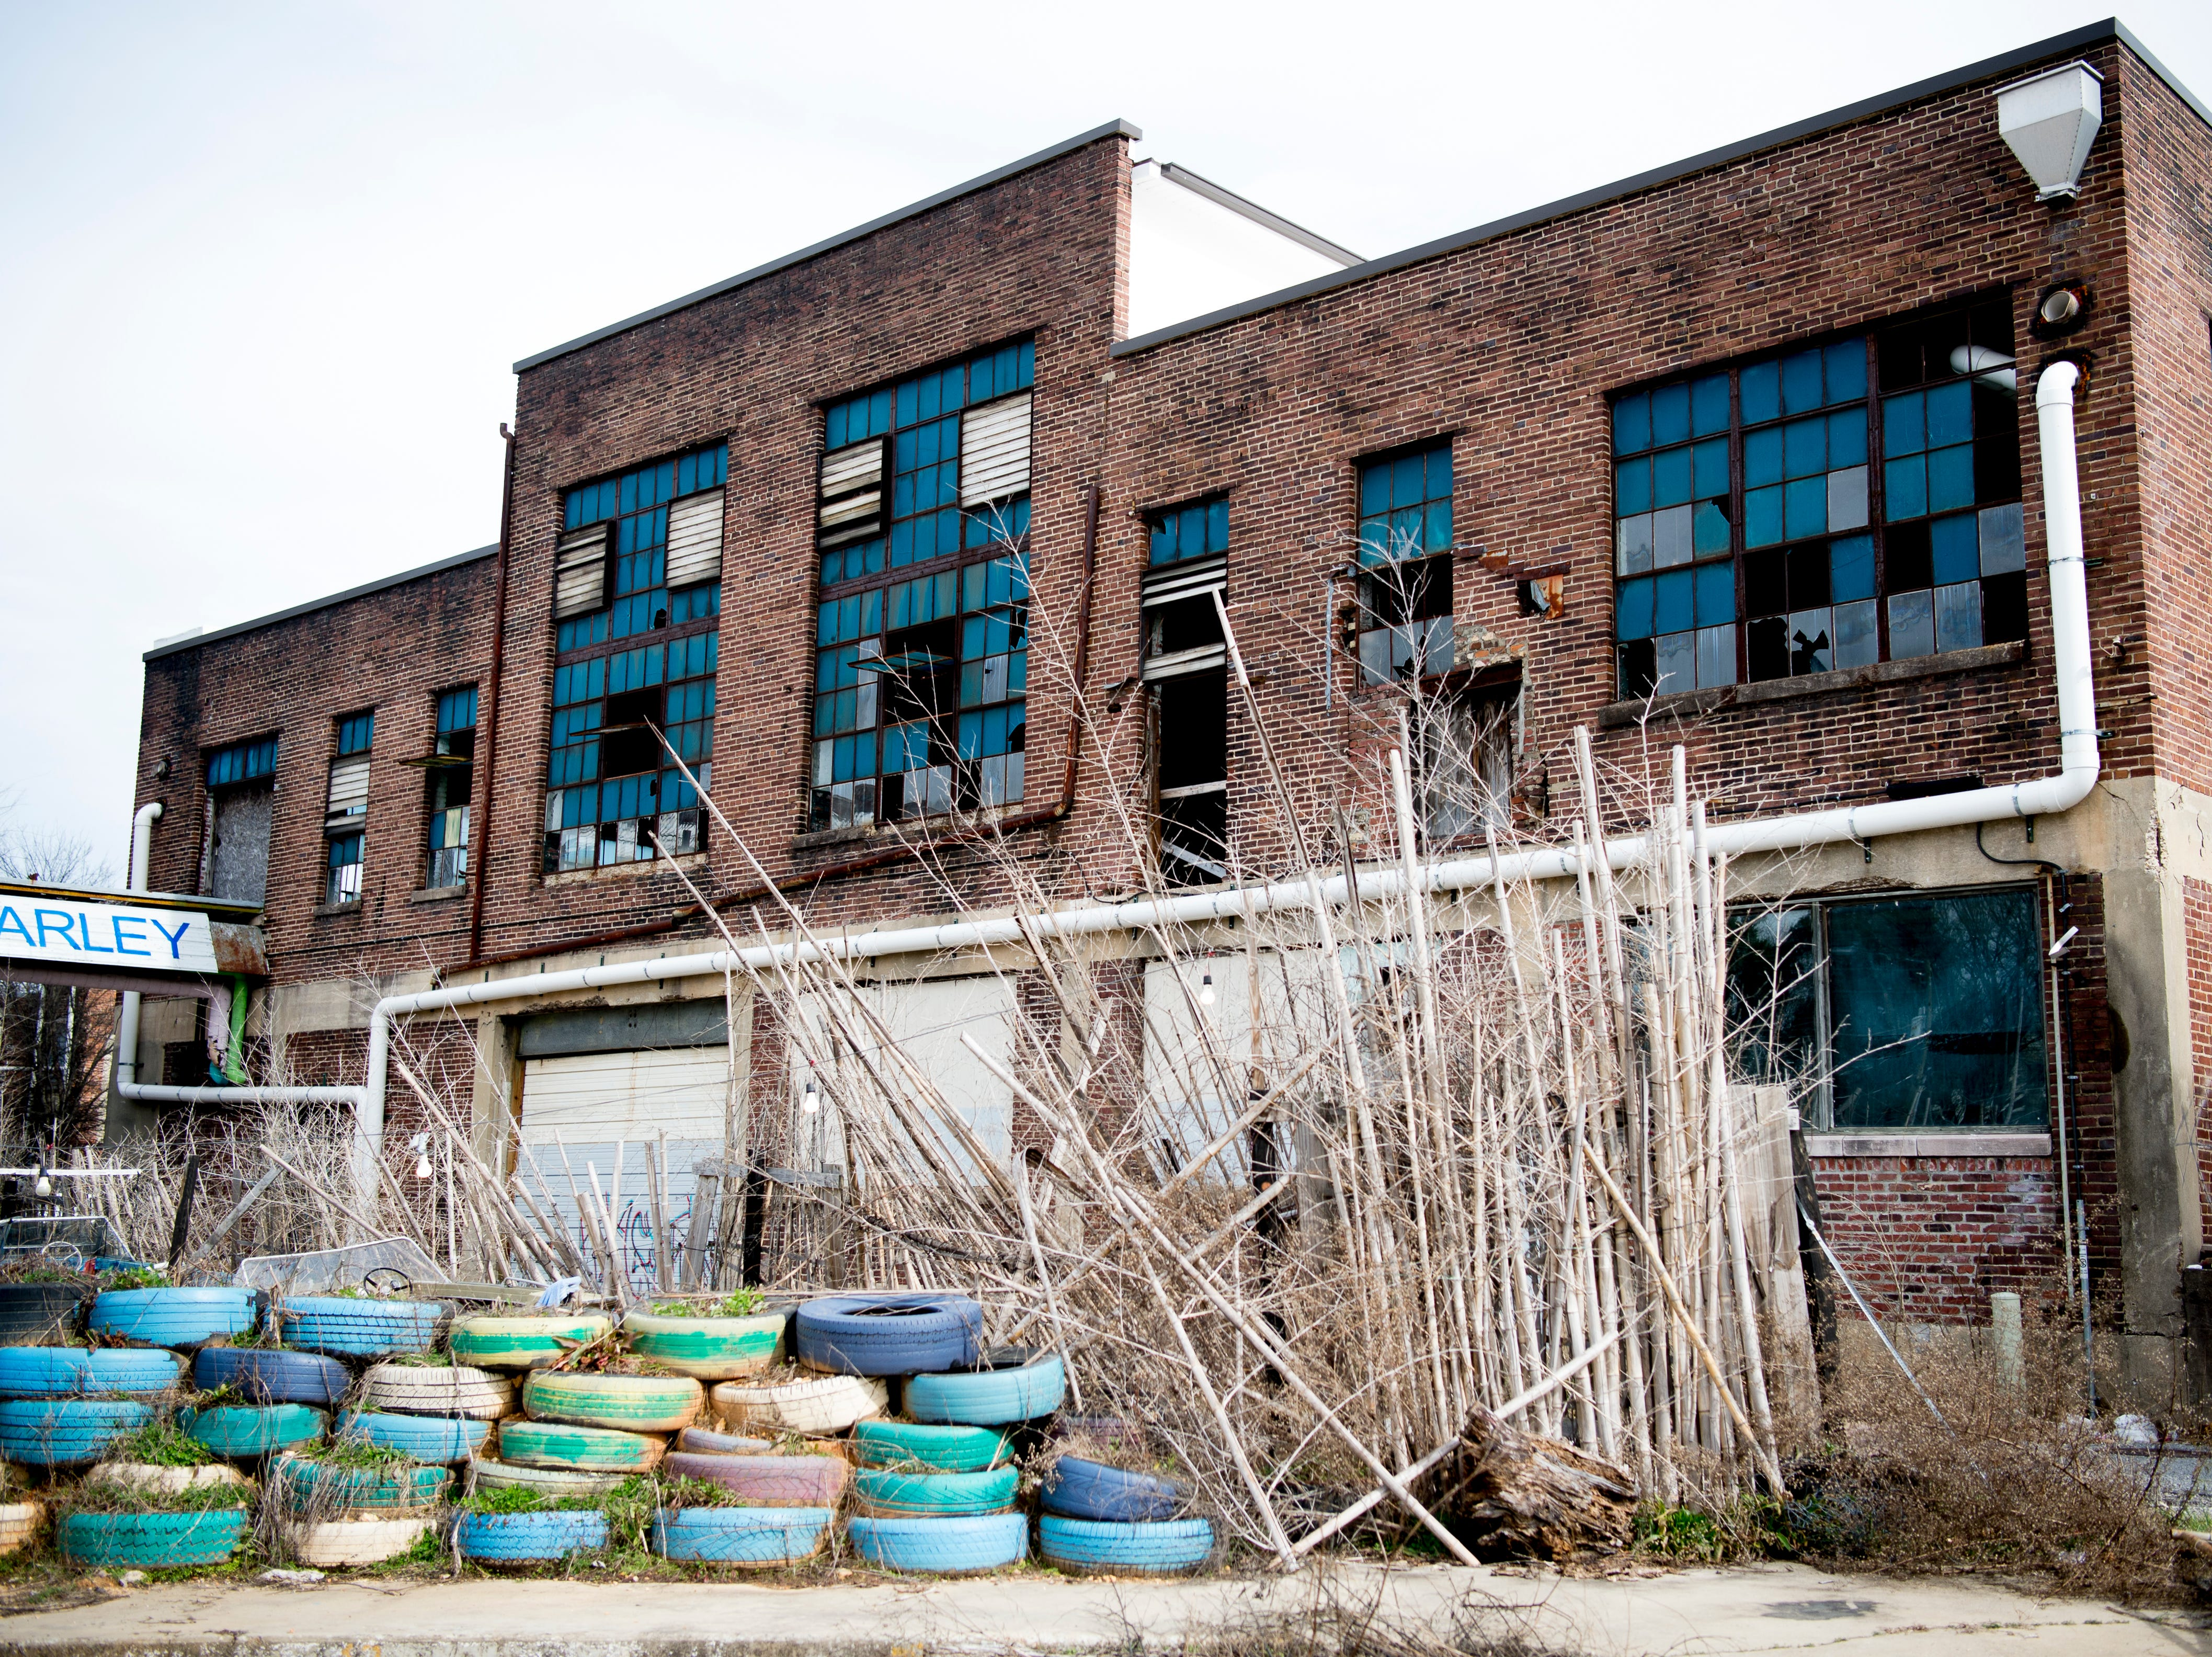 The neighboring building is planned for redevelopment beside Bar Marley in Knoxville, Tennessee on Thursday, February 14, 2019. The Caribbean-themed Bar Marley is facing possible acquisition and condemnation by KCDC due to code violations.